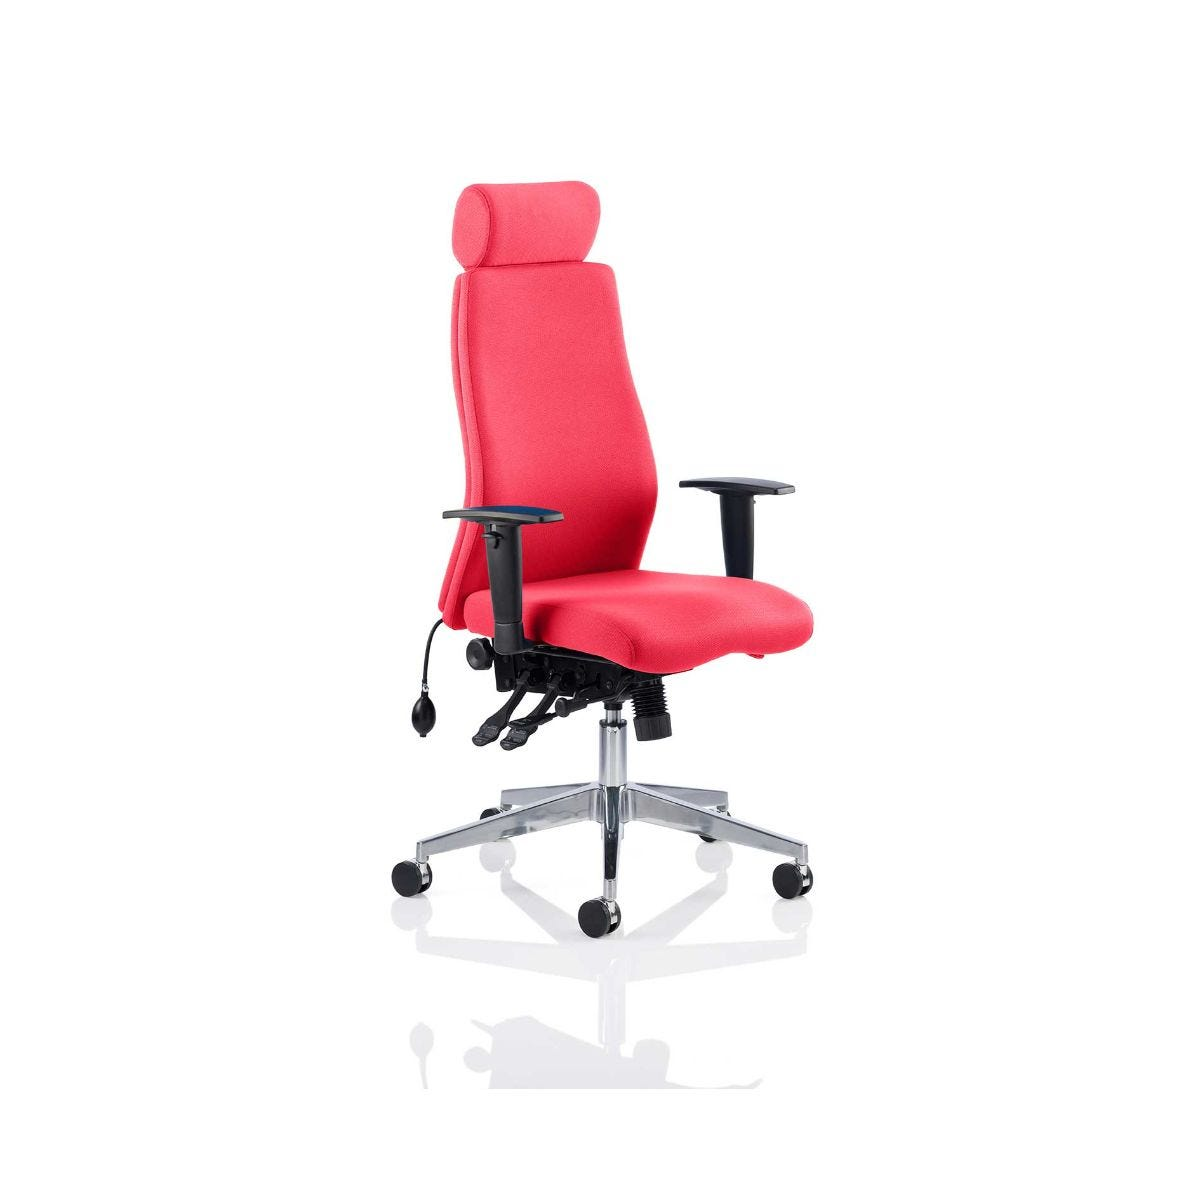 Onyx Bespoke Office Chair With Headrest, Cherry